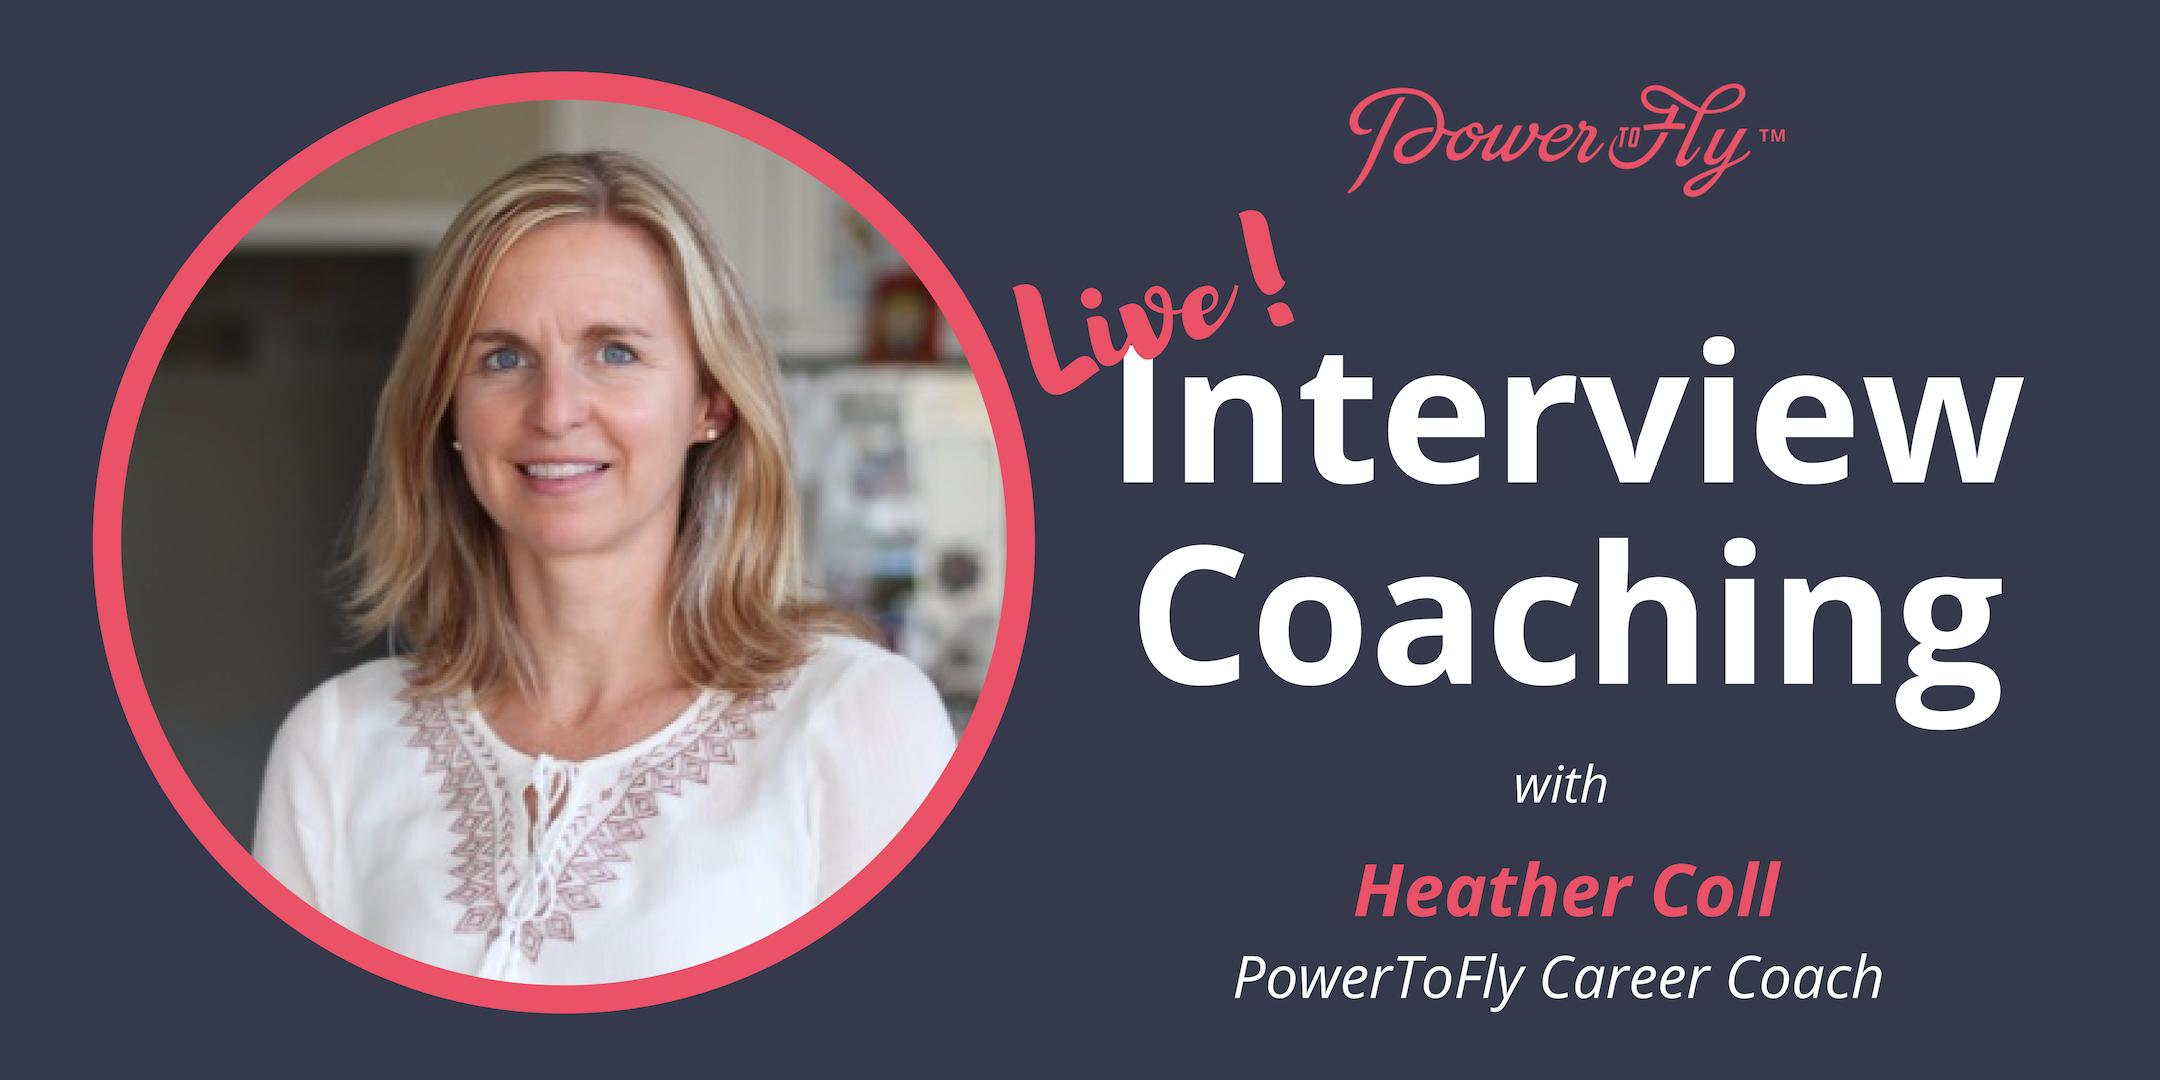 *LIVE* Interview Coaching With PowerToFly's Career Coach 5/23